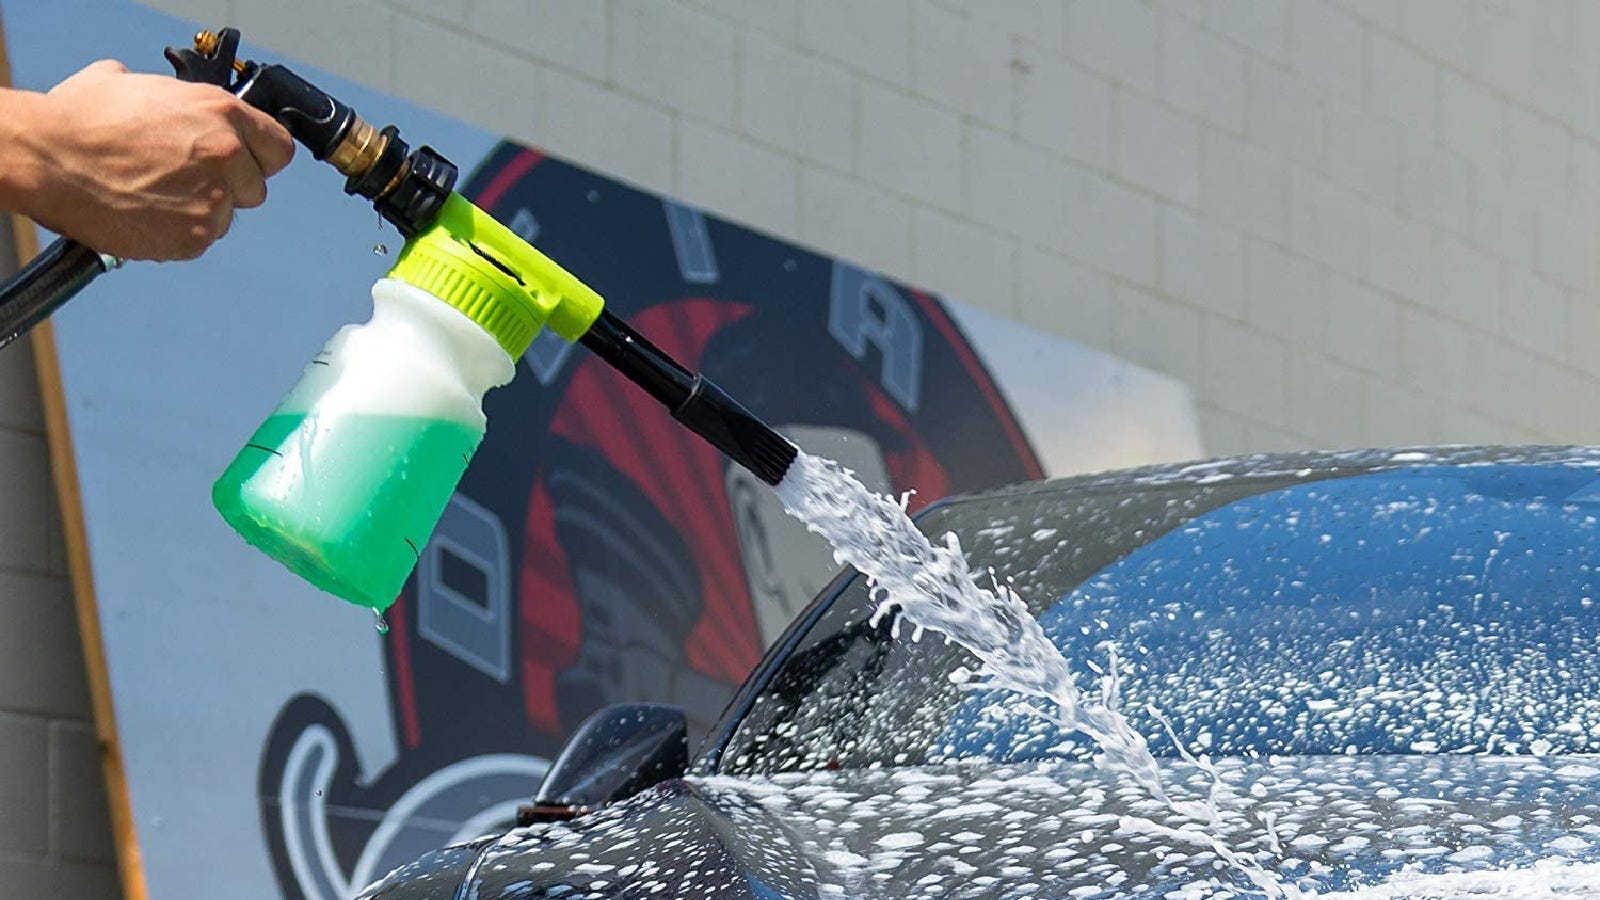 A person spraying a car with cleaning product using a foam sprayer.